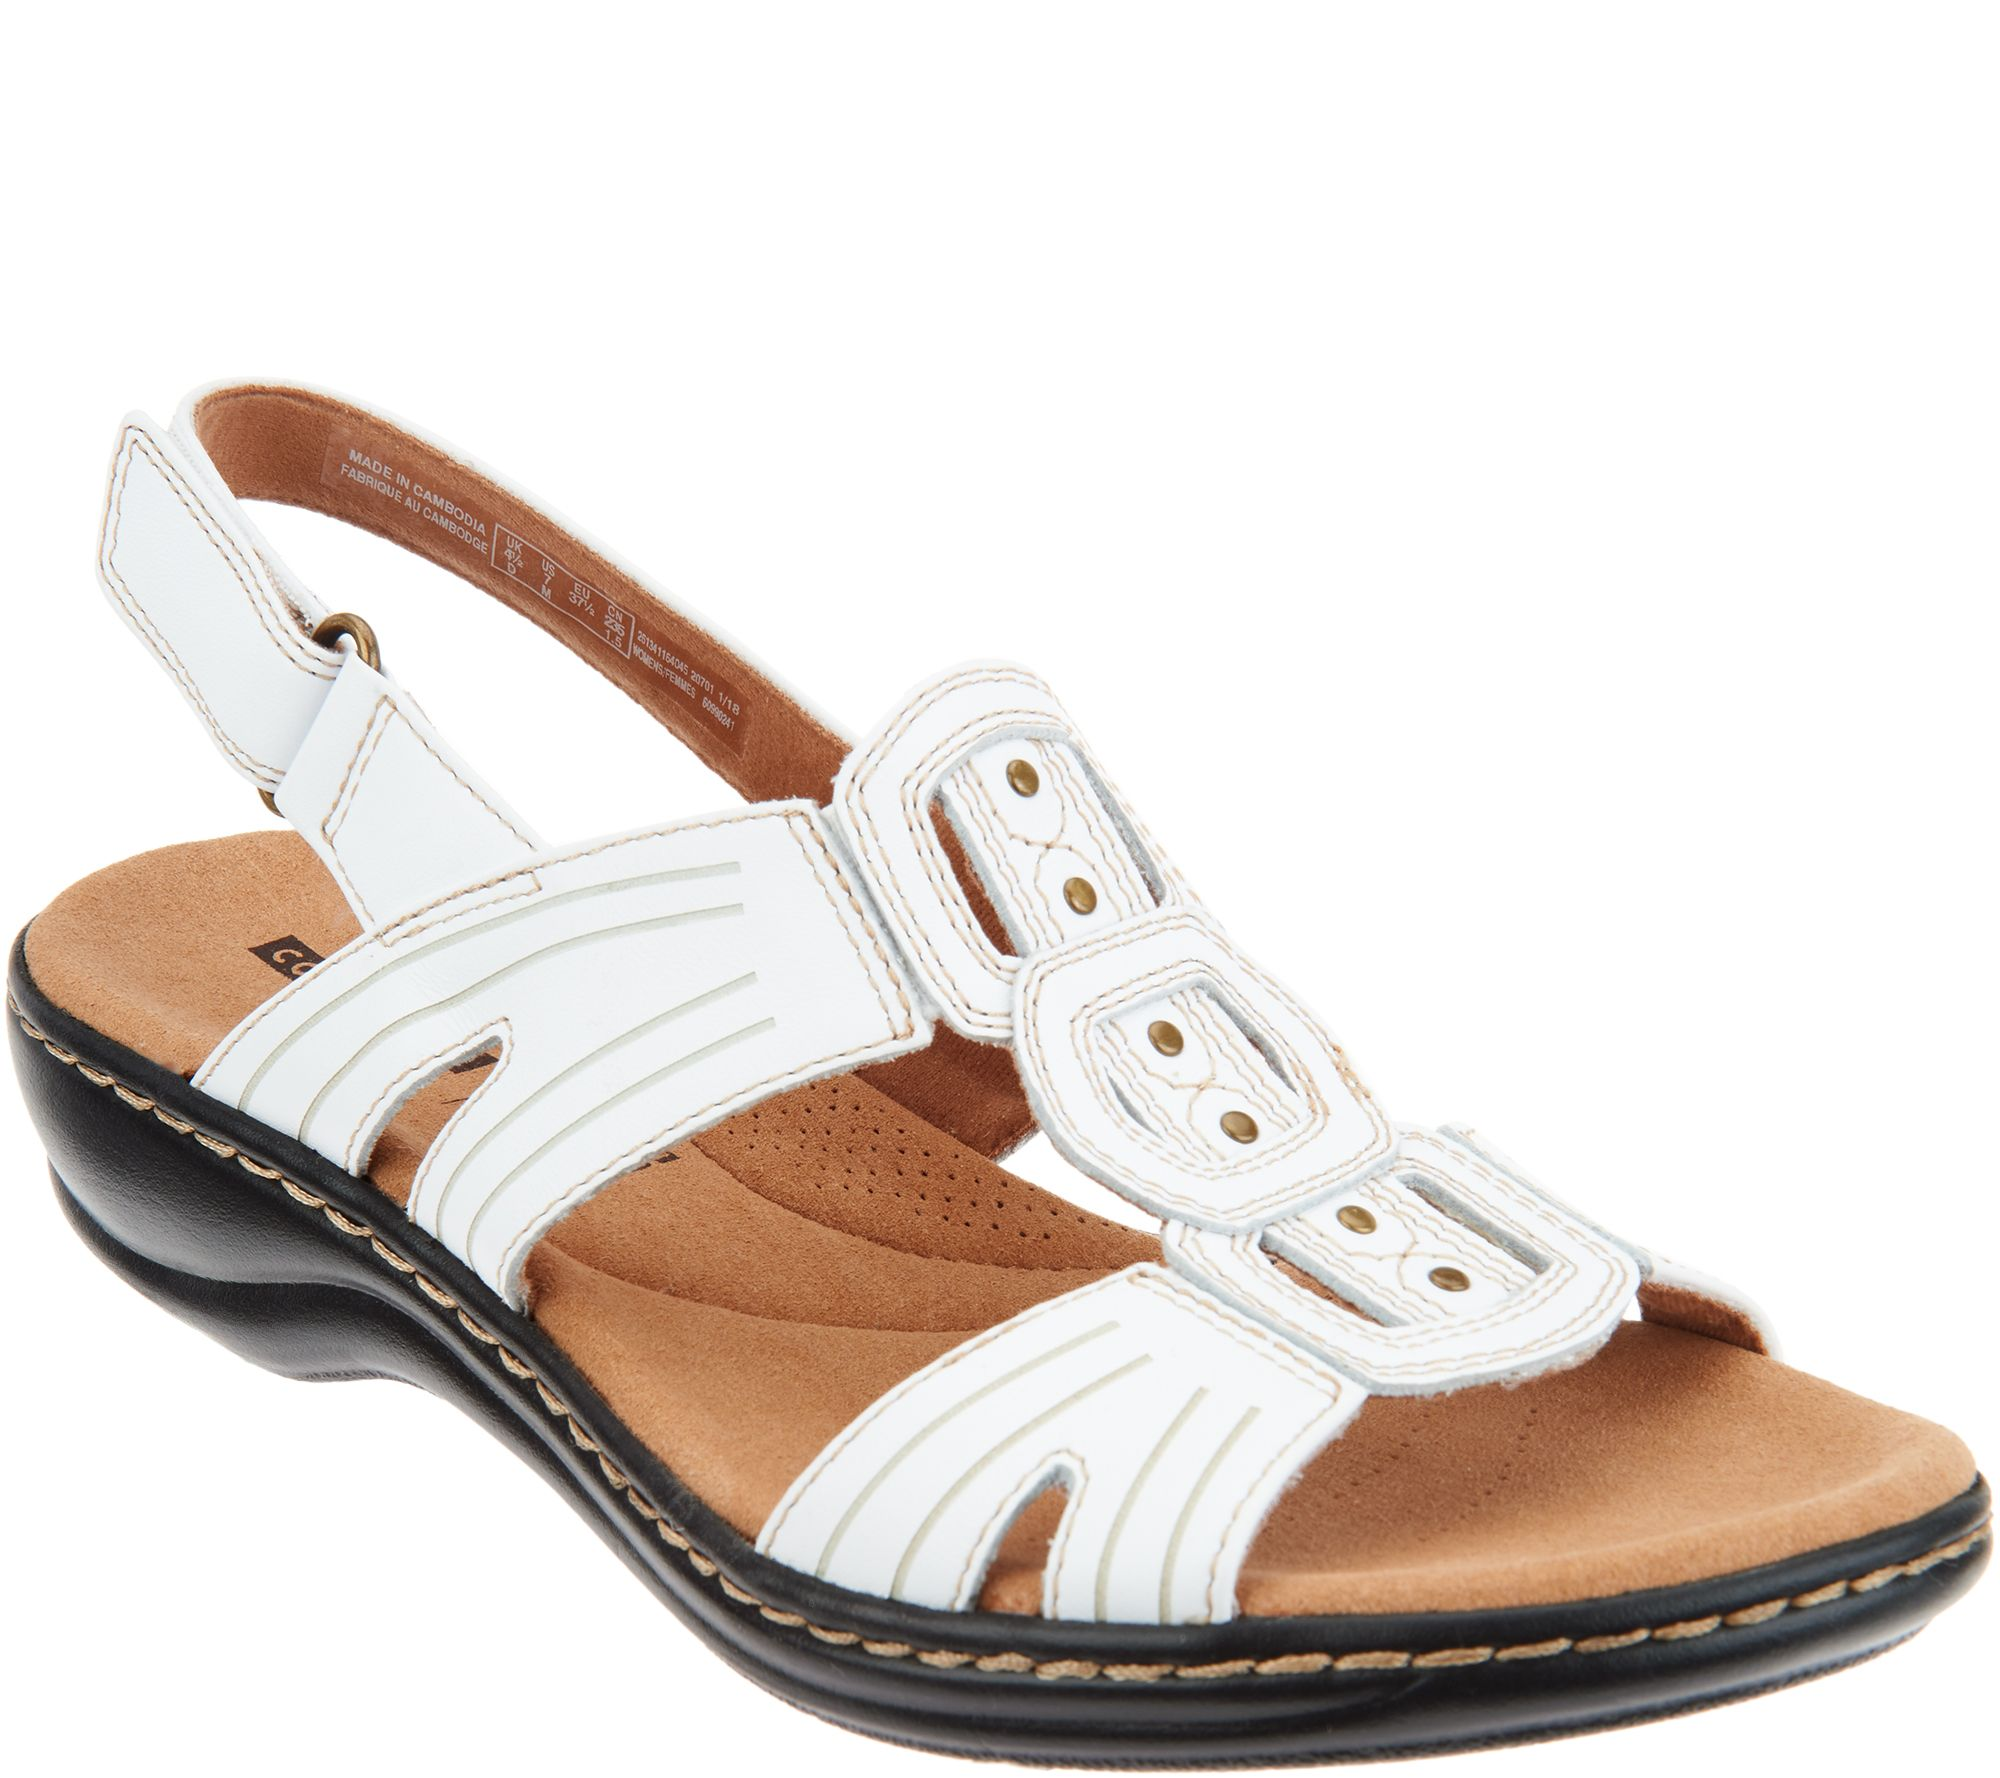 e2c0d684299 Clarks Leather Lightweight Adjustable Sandals - Leisa Vine - Page 1 —  QVC.com